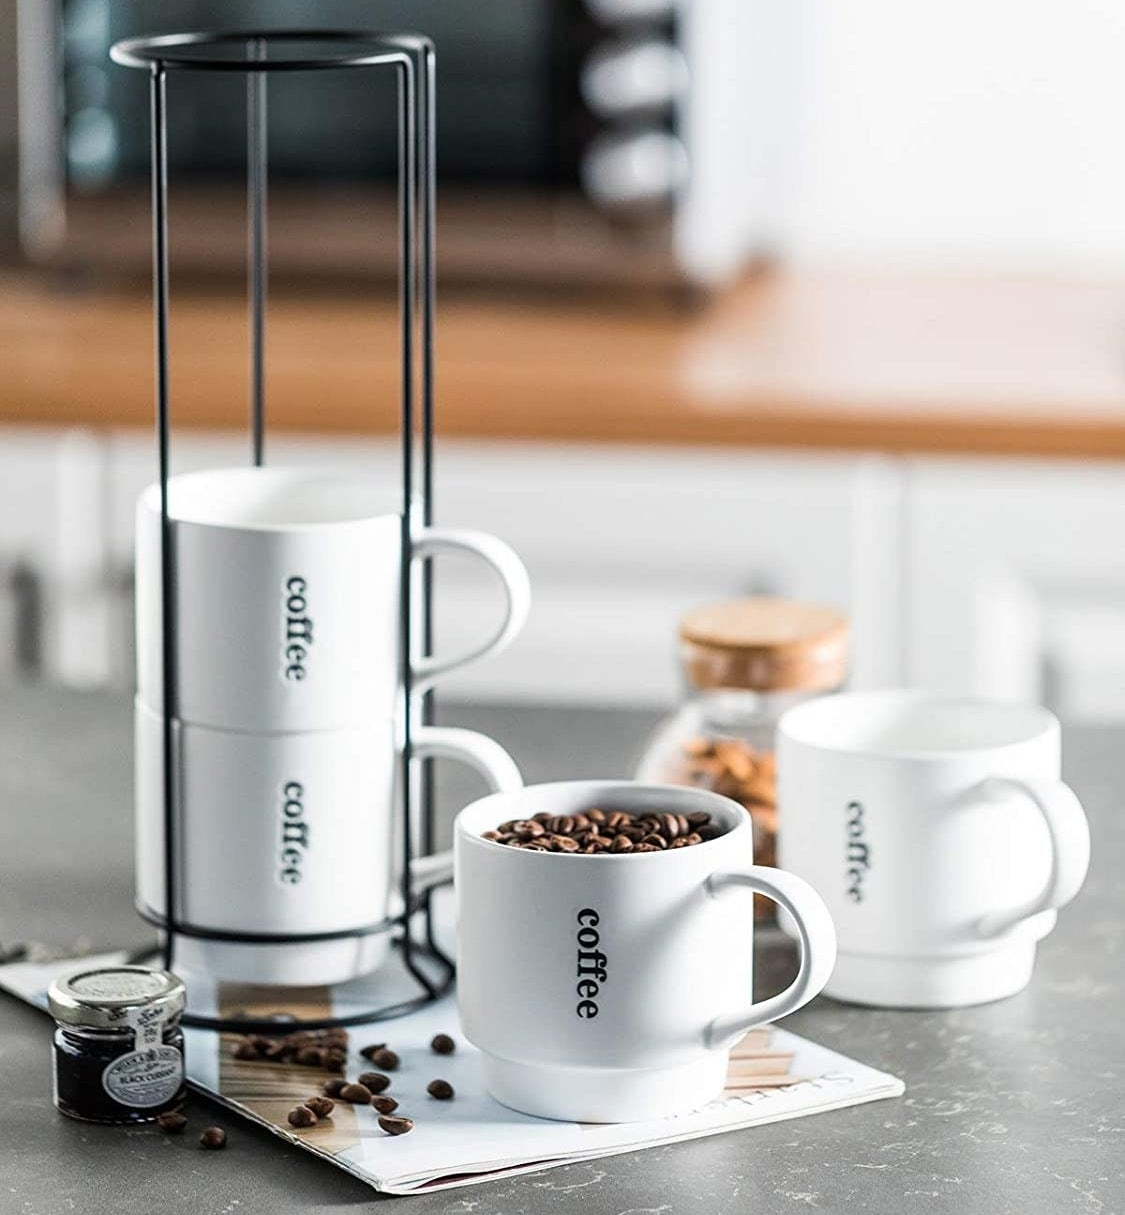 the white stackable cups